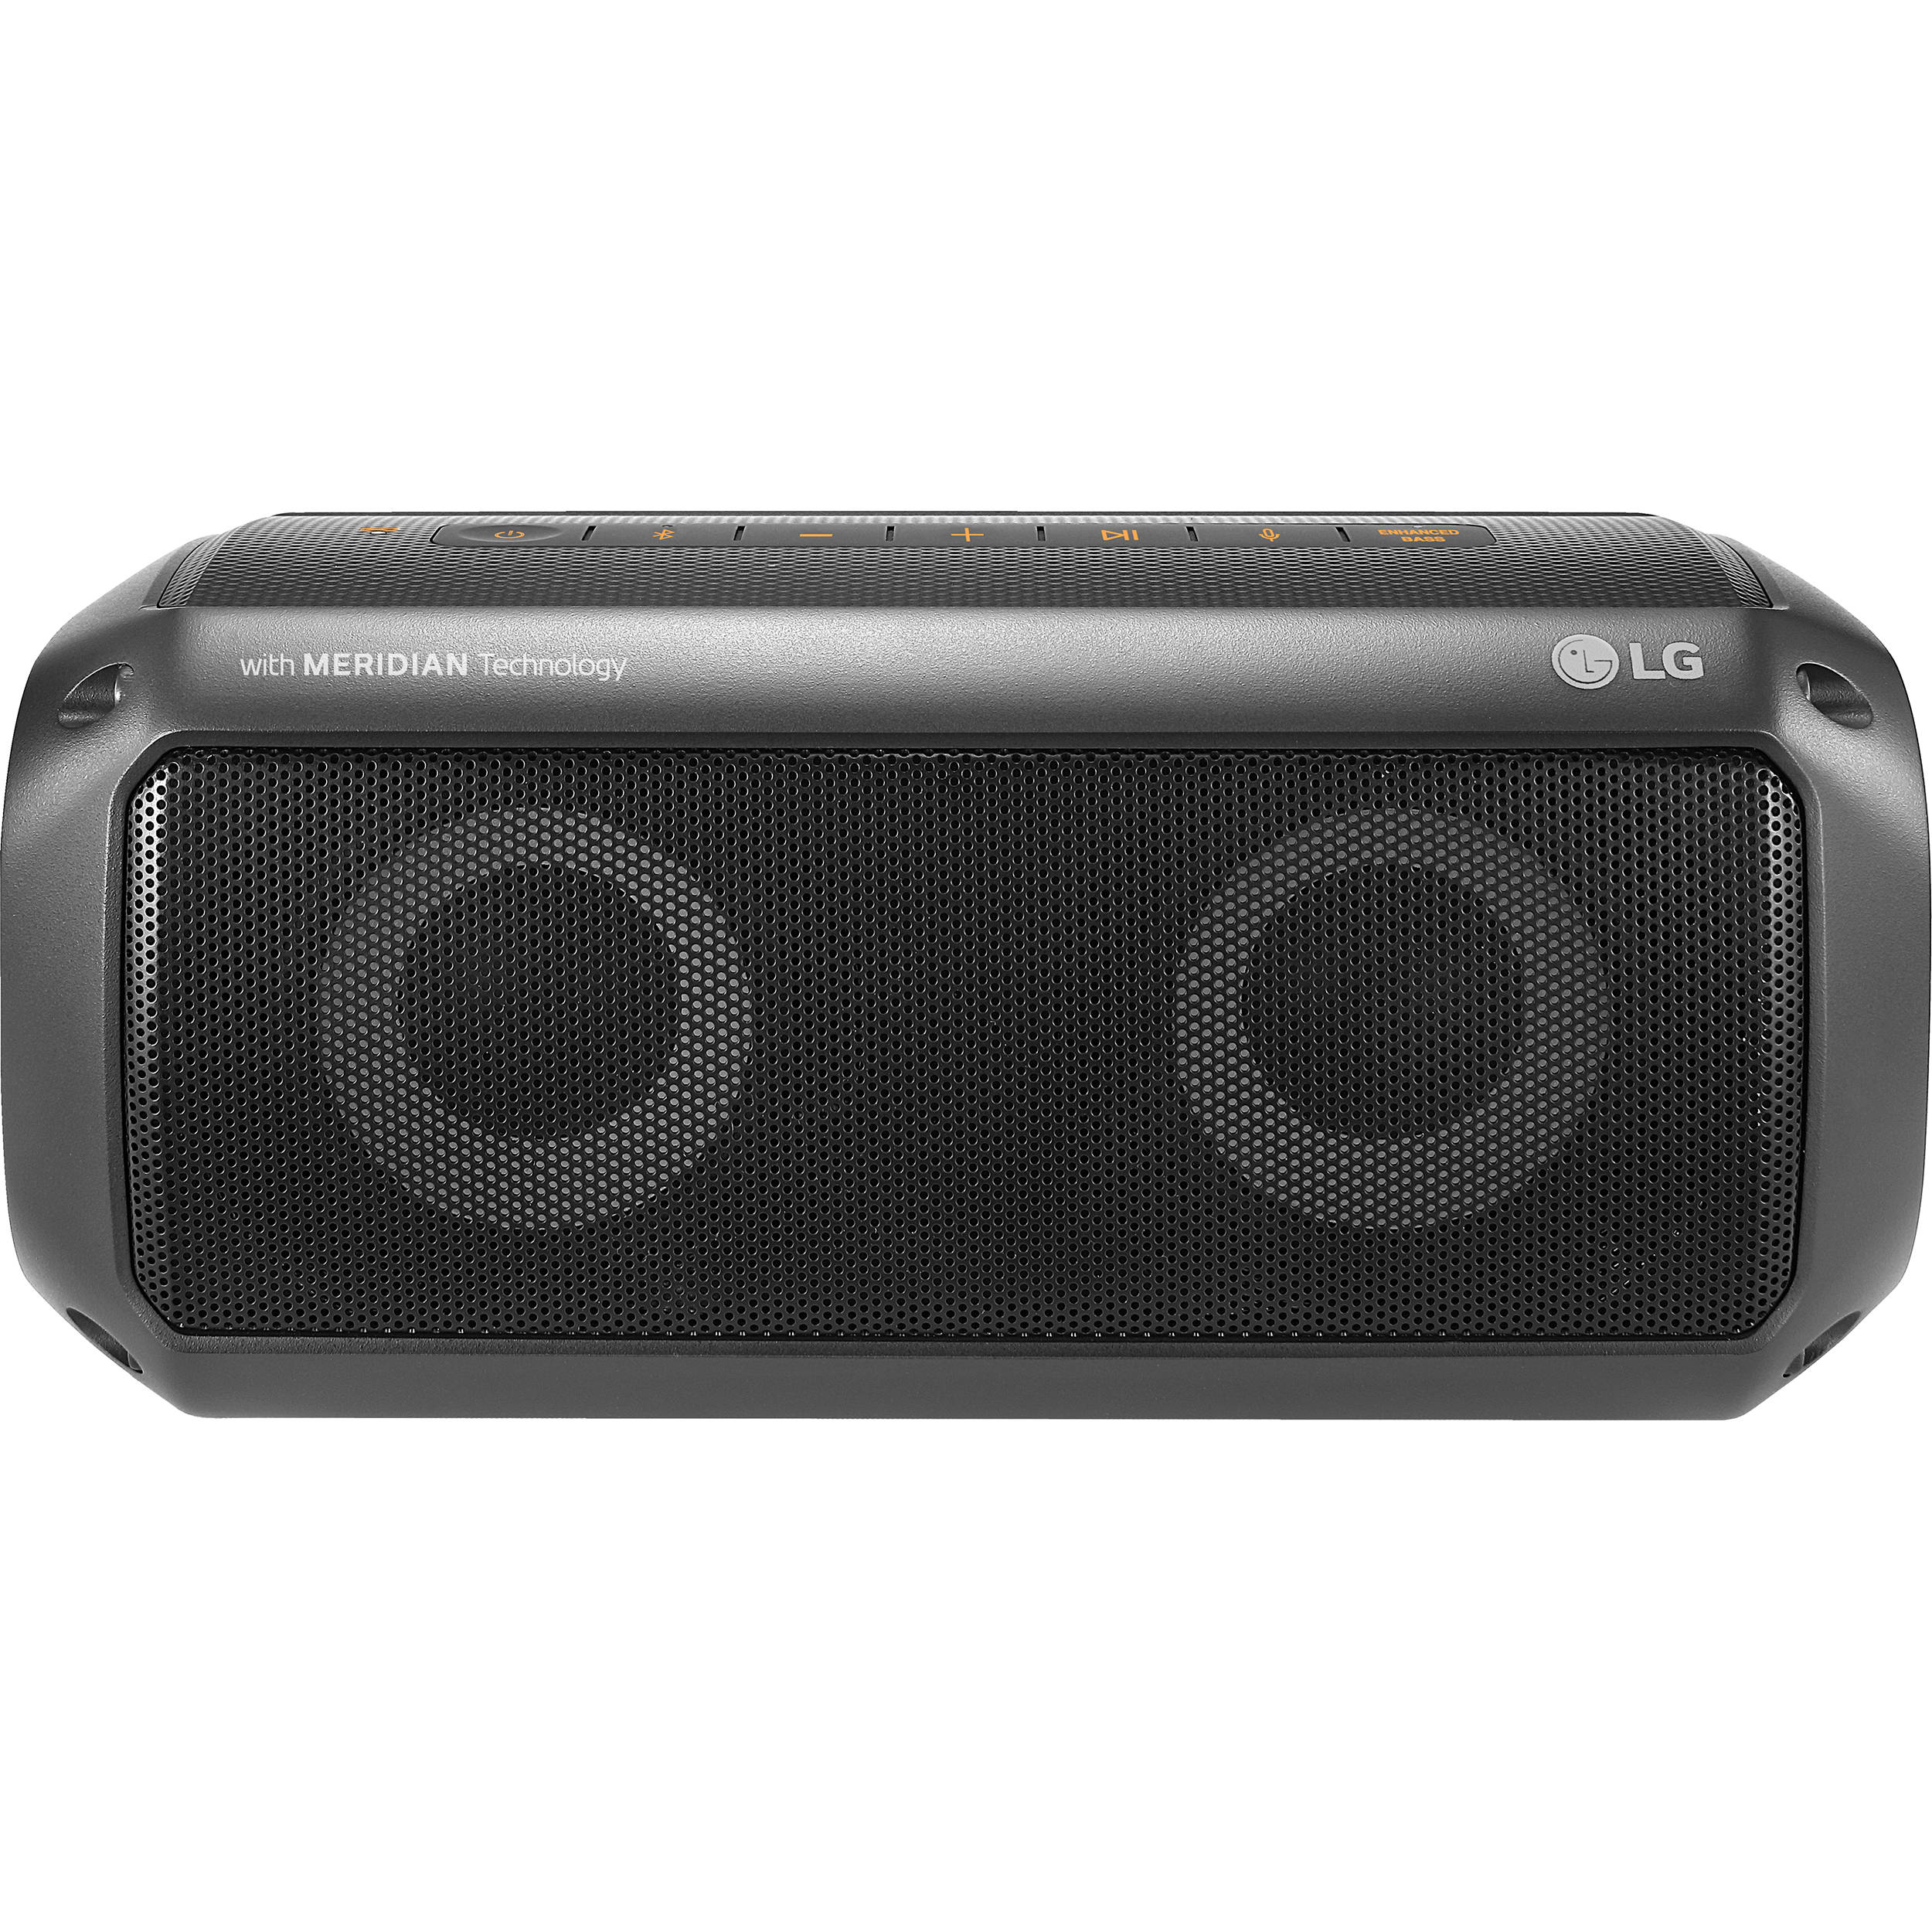 lg pk3 portable bluetooth speaker with meridian technology pk3. Black Bedroom Furniture Sets. Home Design Ideas